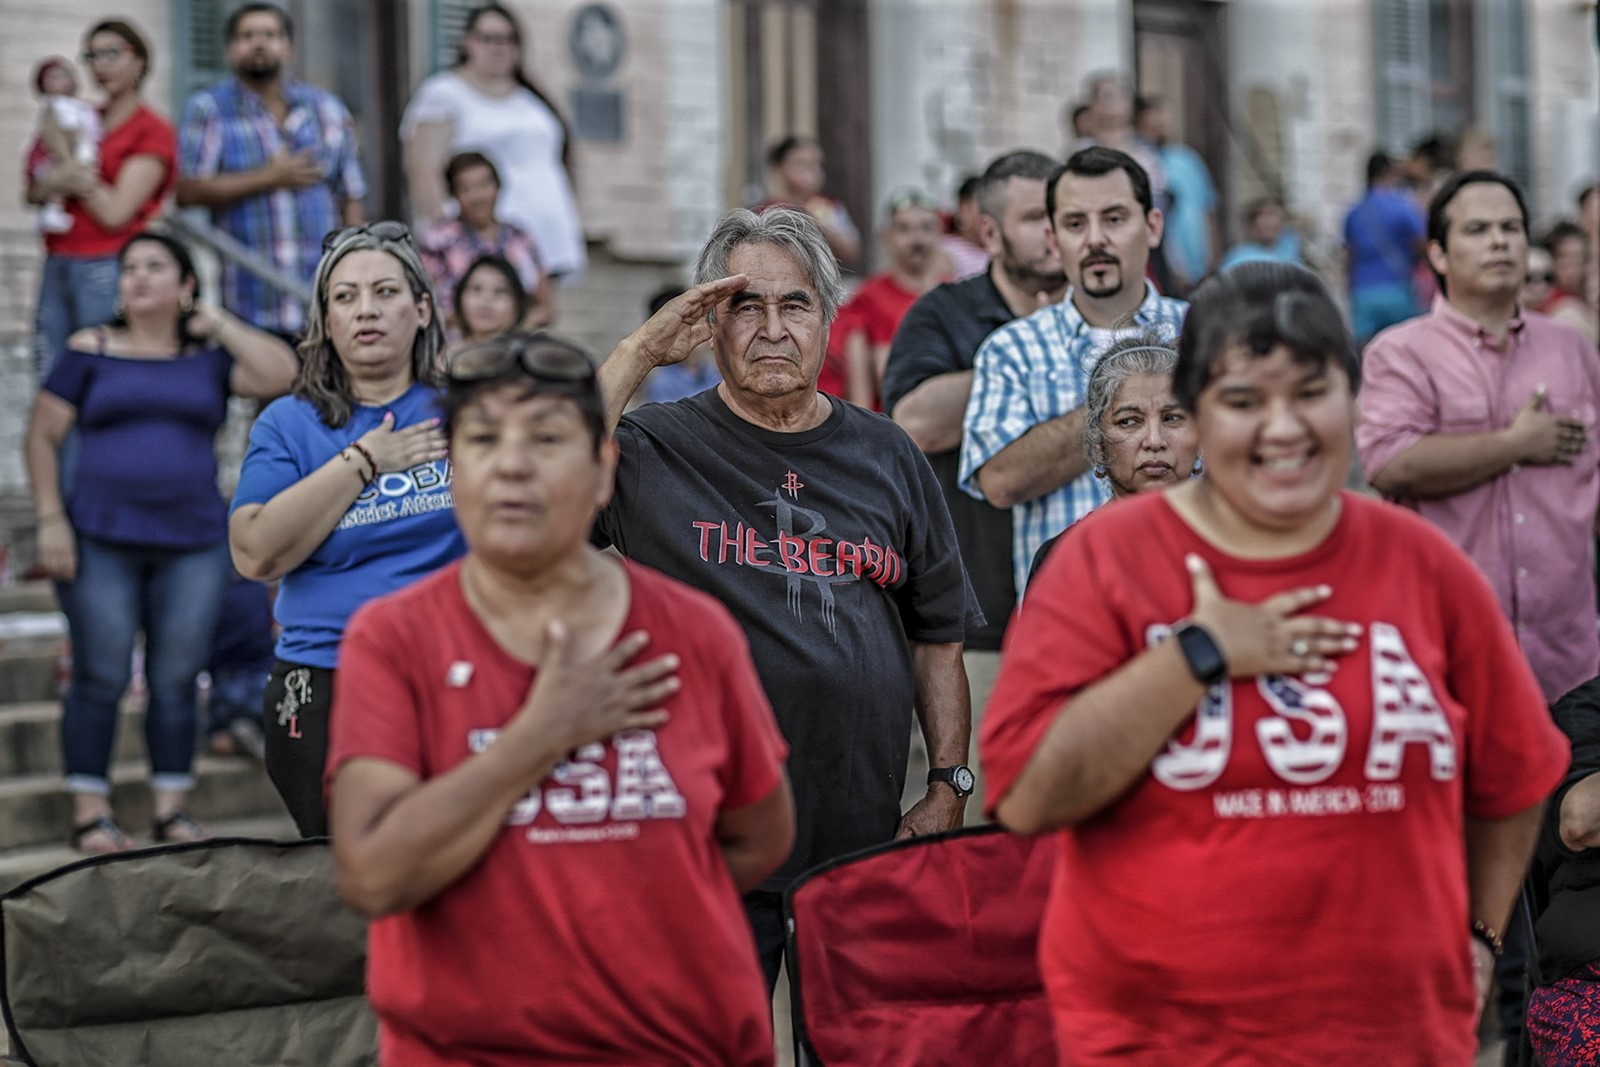 Roma's Fourth of July festivities include patriotic prayers, fireworks and a Border Patrol booth where residents greet agents warmly. — Photograph: Robert Gauthier/Los Angeles Times.